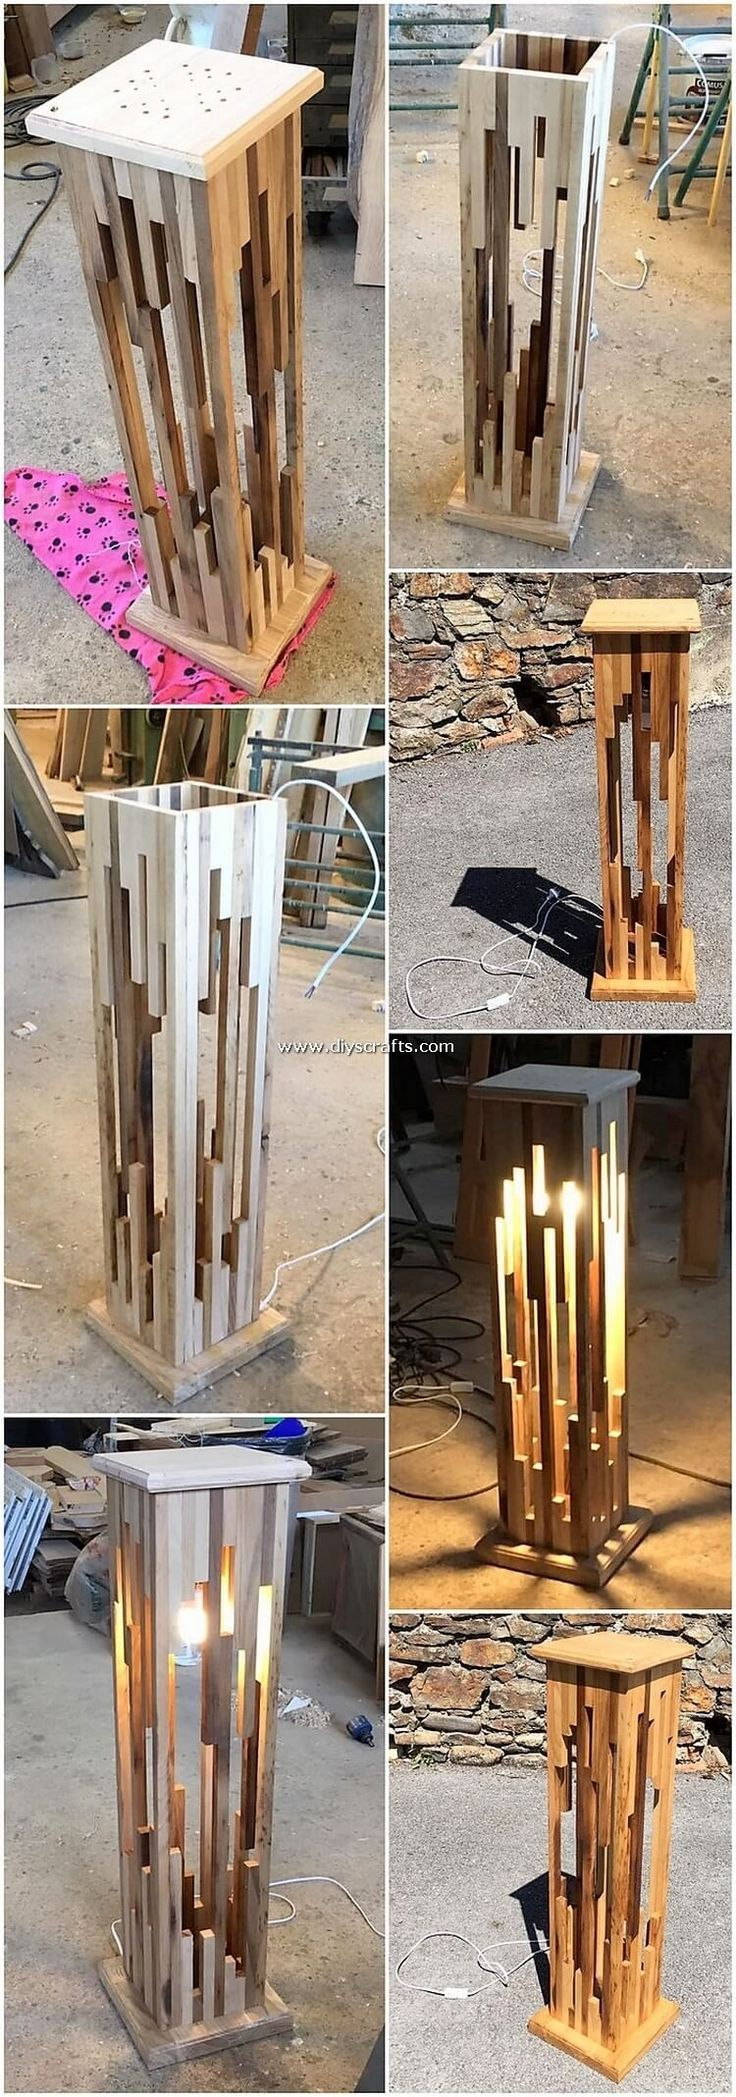 Implausible Diy Creations Made With Wooden Pallets Diy Crafts